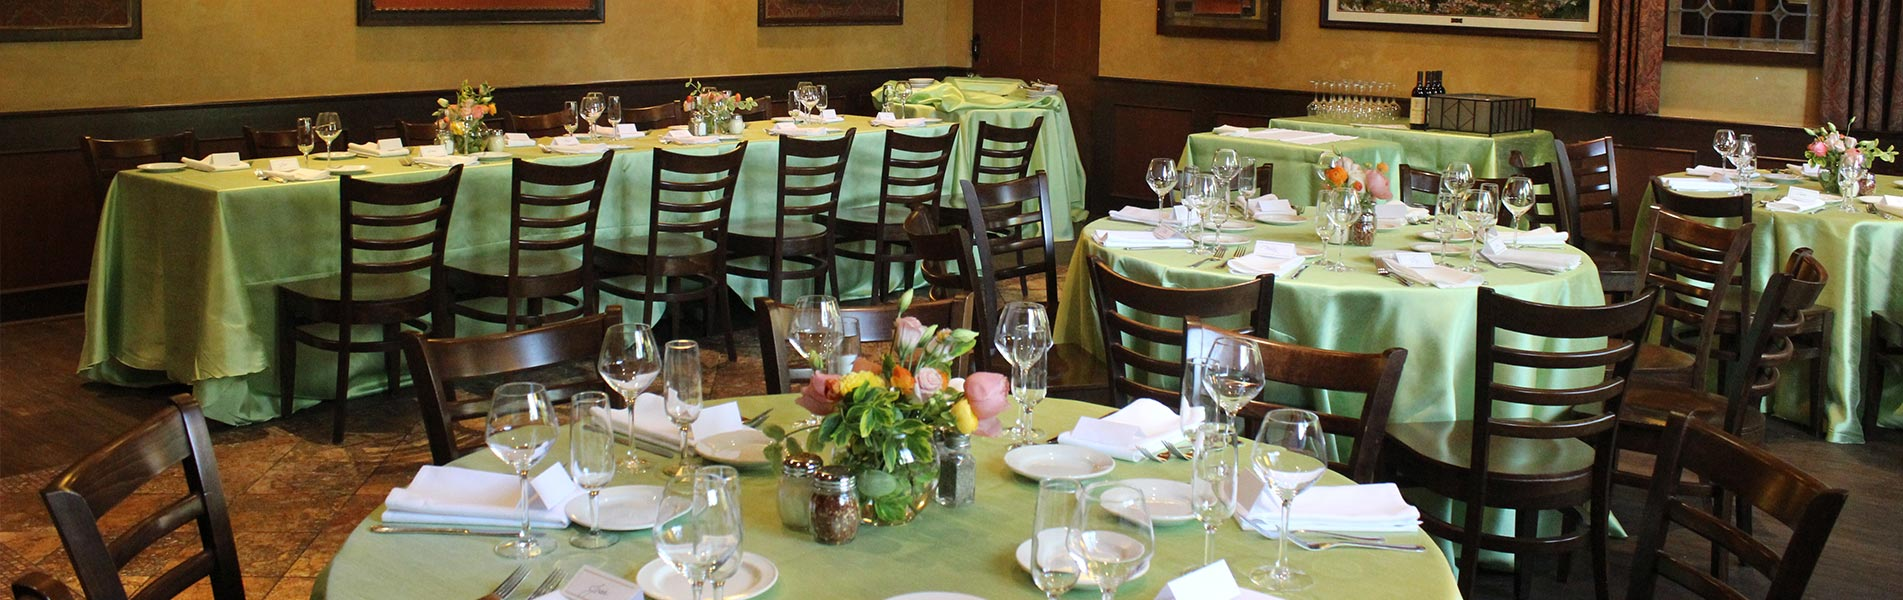 Giammarco's Italian Restaurant Catering & Event Services